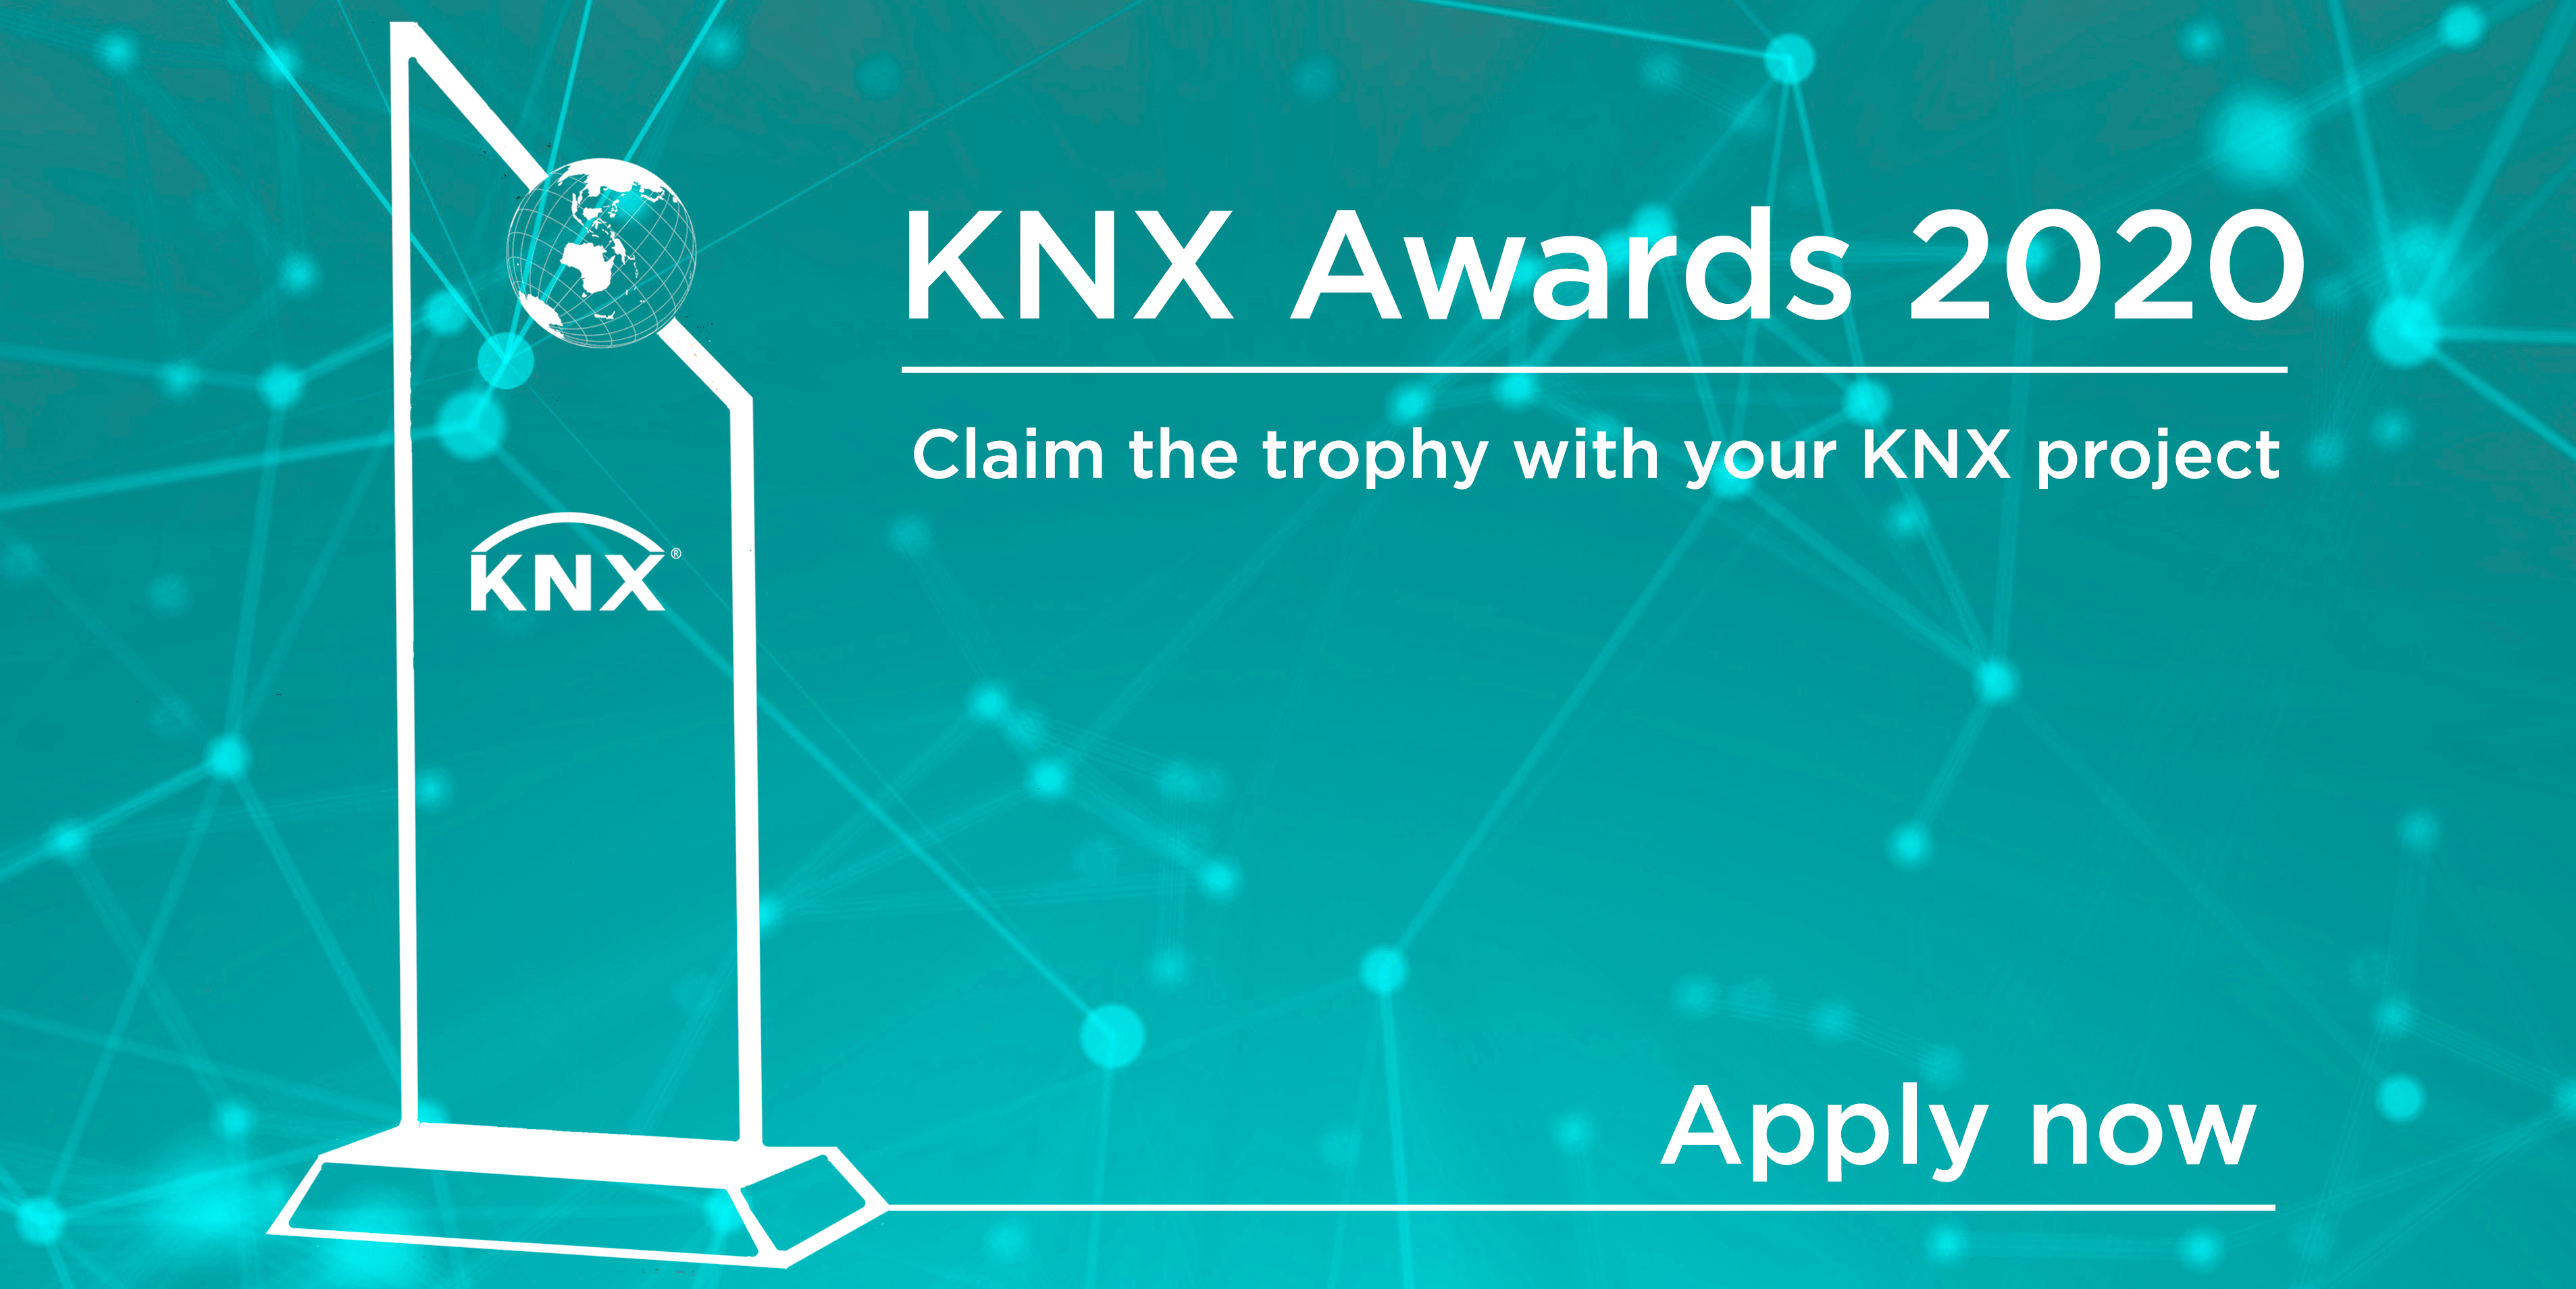 KNX Awards 2020 Header